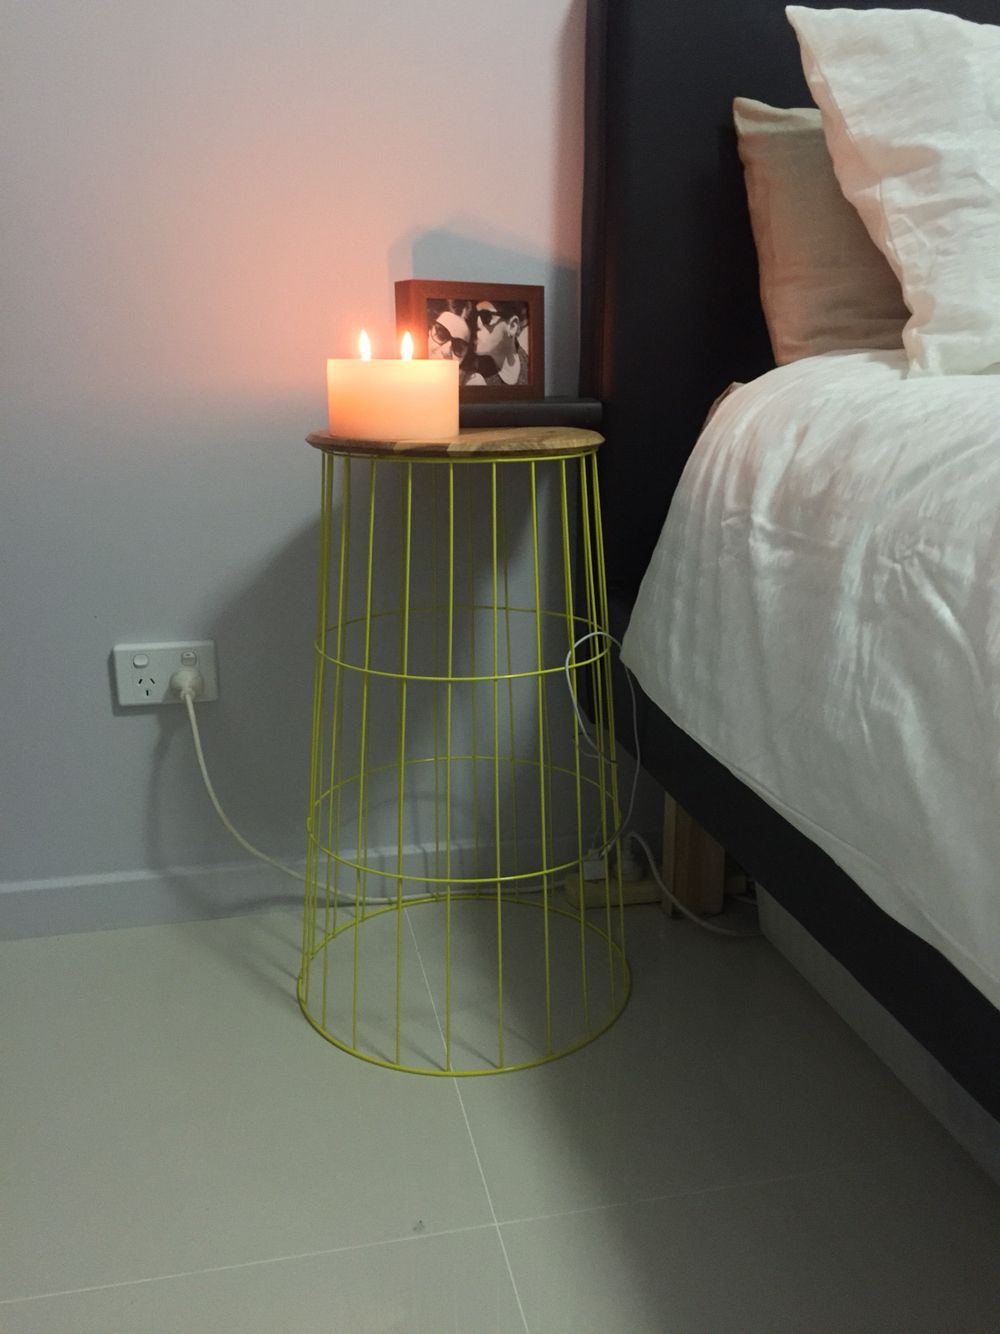 Kmart Hack Bedside Table 1x Wire Laundry Basket 1x